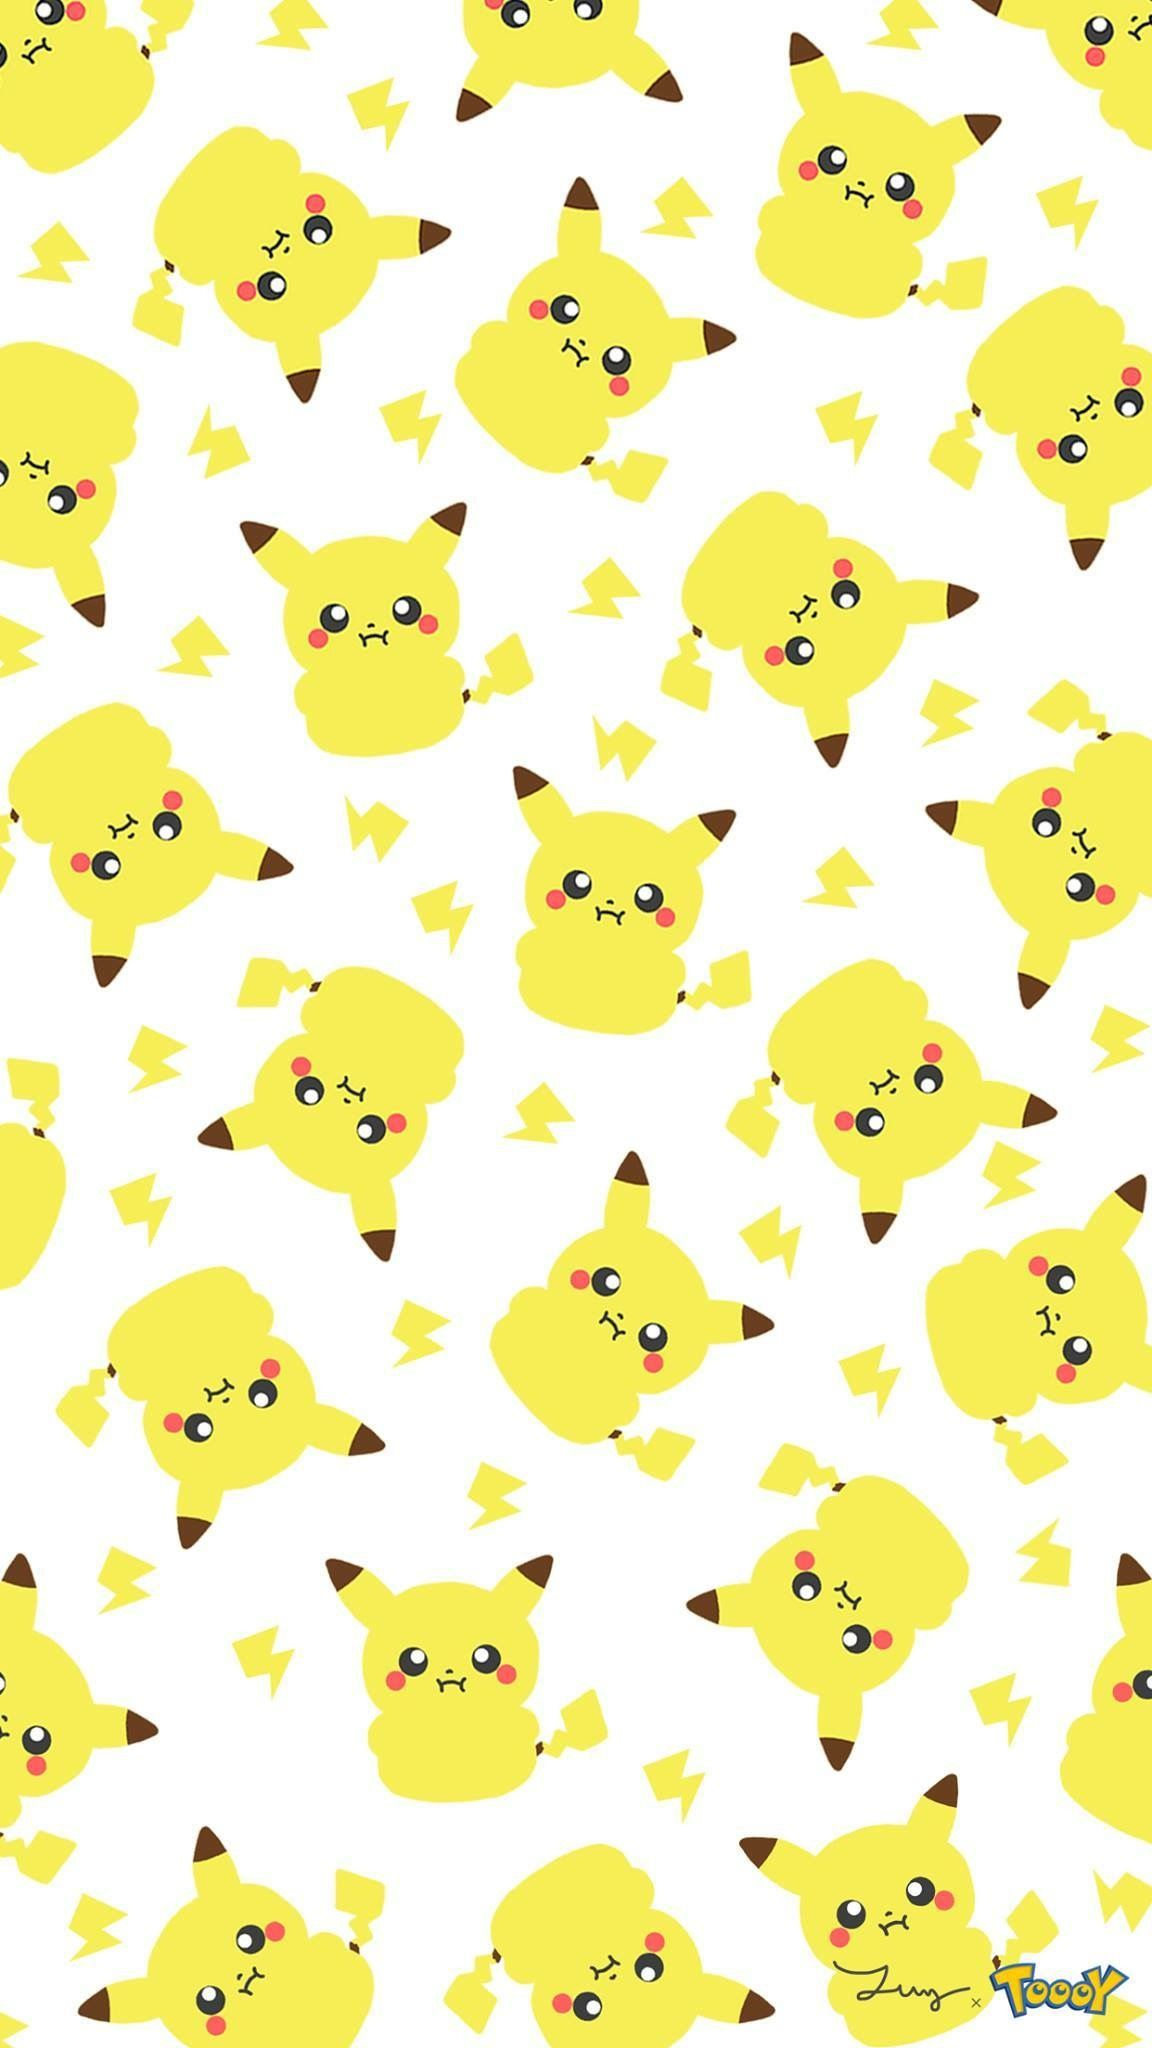 Pin By Kristian Ford On Kawaii Af Cute Pokemon Wallpaper Pikachu Wallpaper Pokemon Backgrounds